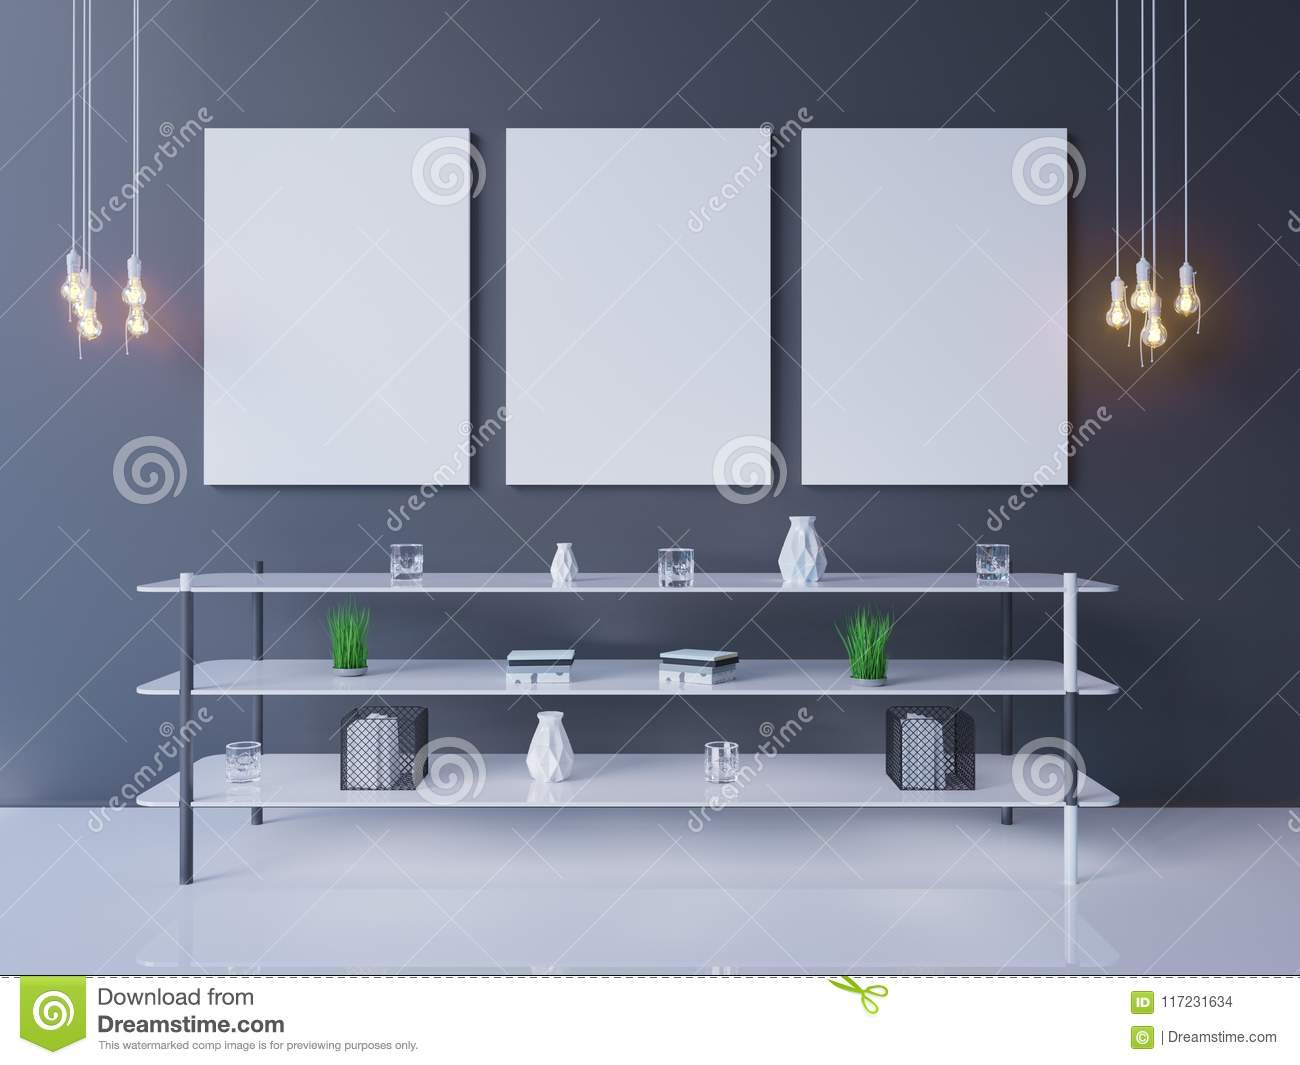 Interior poster mock-up with empty frame and plants in the room. 3D rendering. illustration